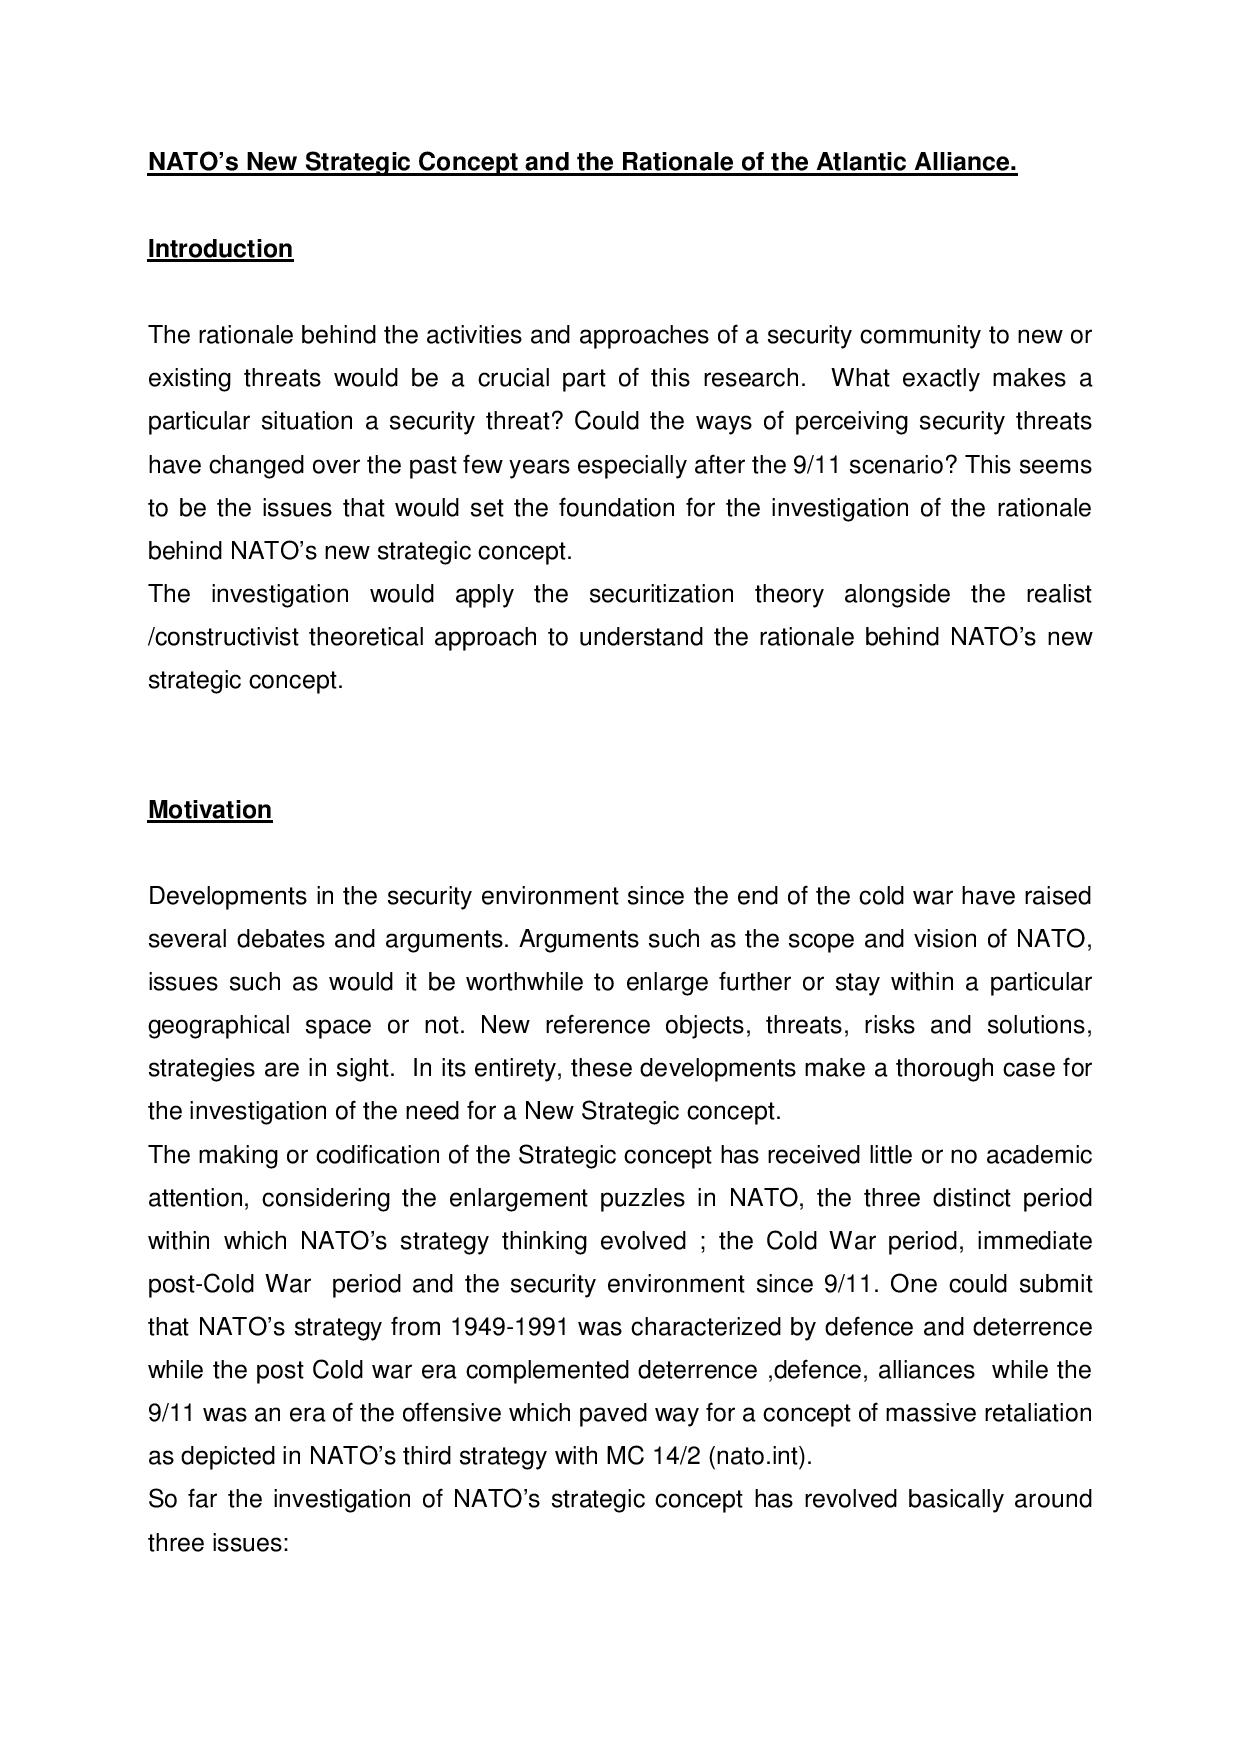 007 Brief Proposal Page How To Write Short For Research Breathtaking A Paper Full